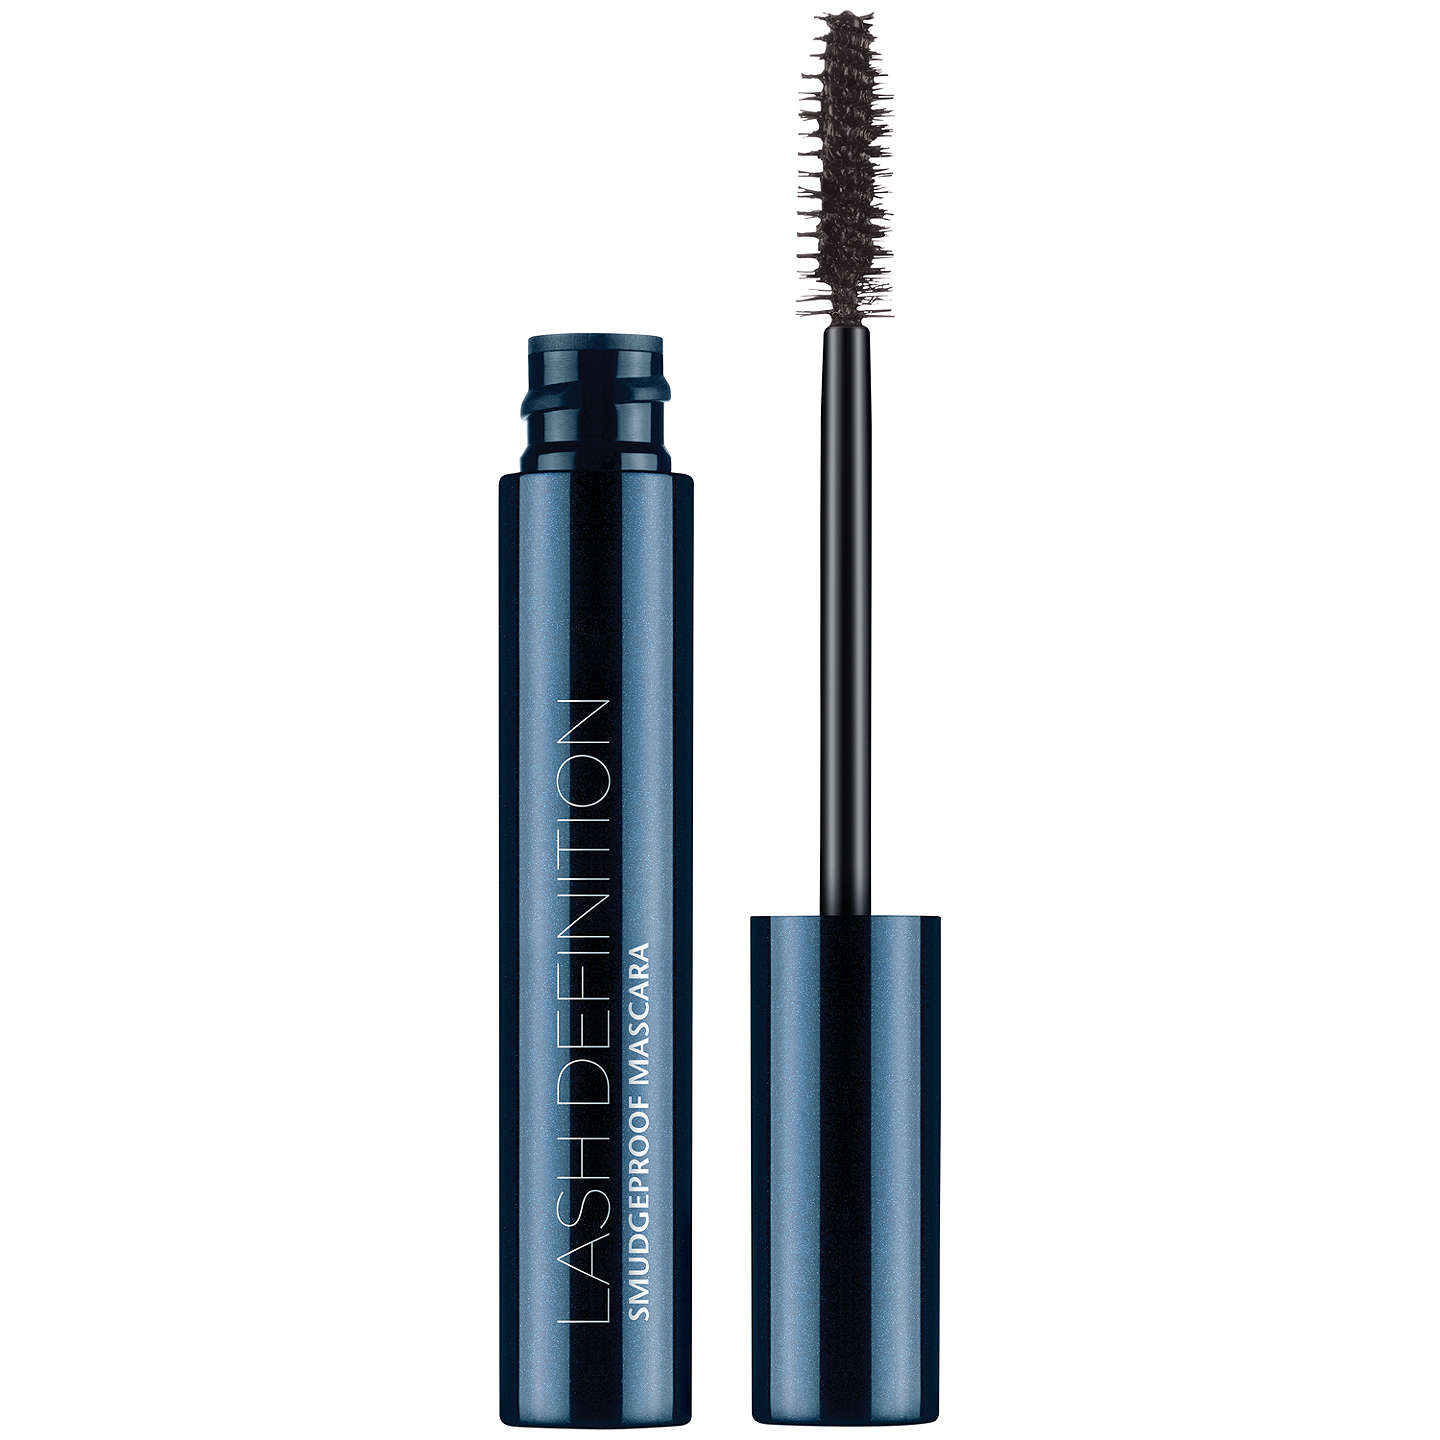 BuyLiz Earle Colour Lash Definition Smudgeproof Mascara, 01 Black Online at johnlewis.com